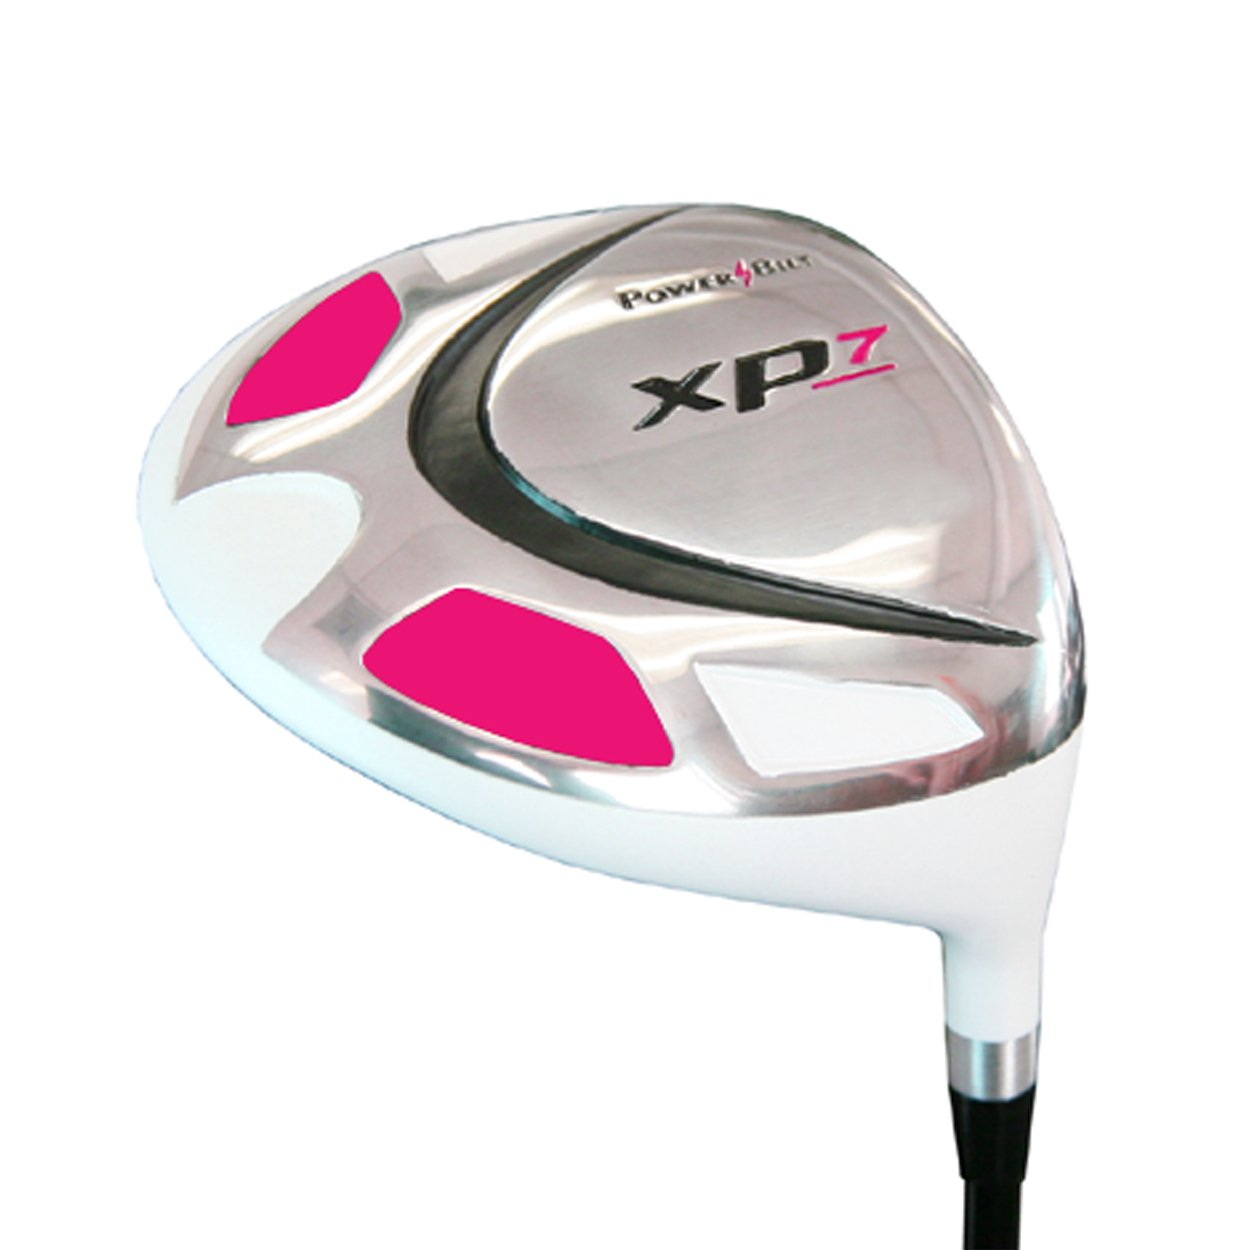 Amazon.com: Powerbilt palos de golf mujer XP7 blanco ...